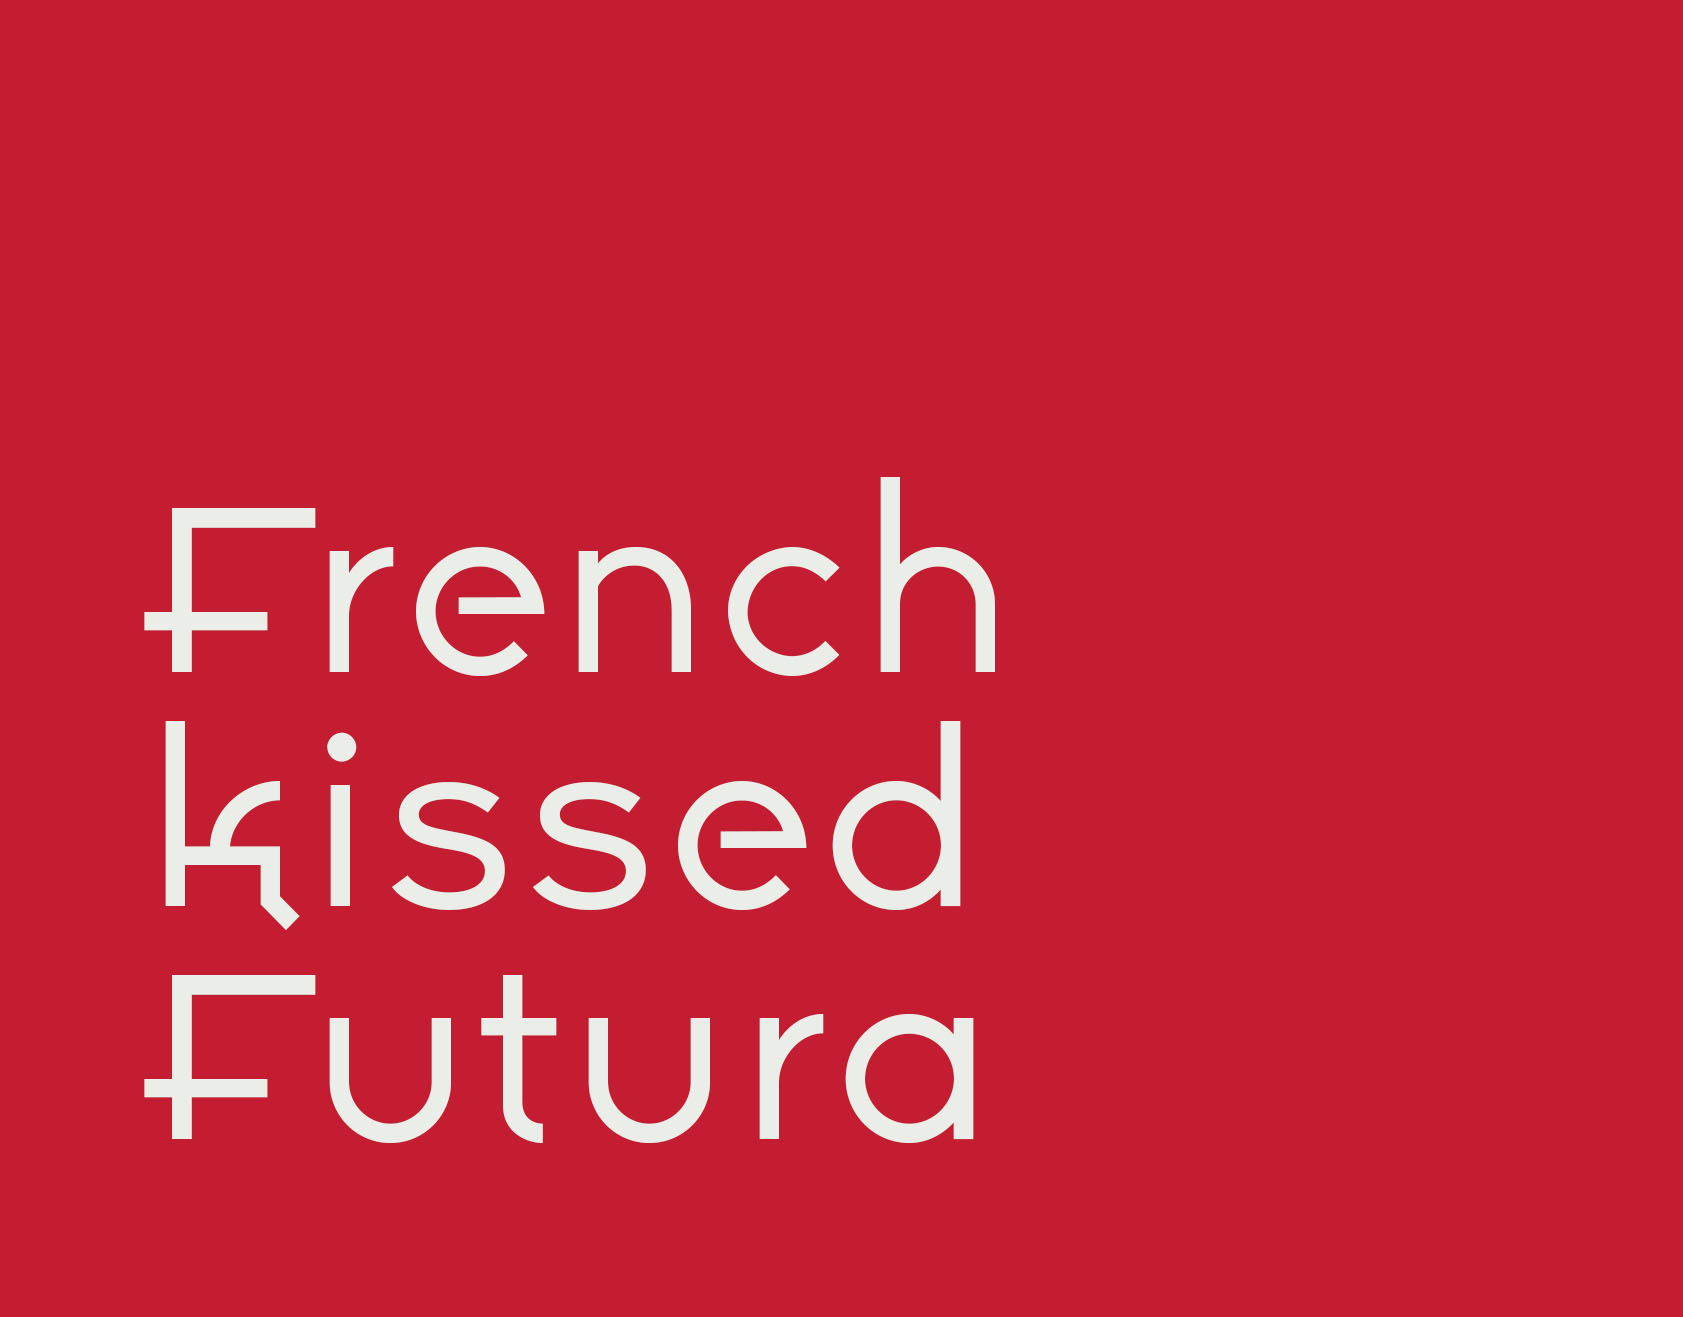 Aspasia, Futura à la French (Typefamily)